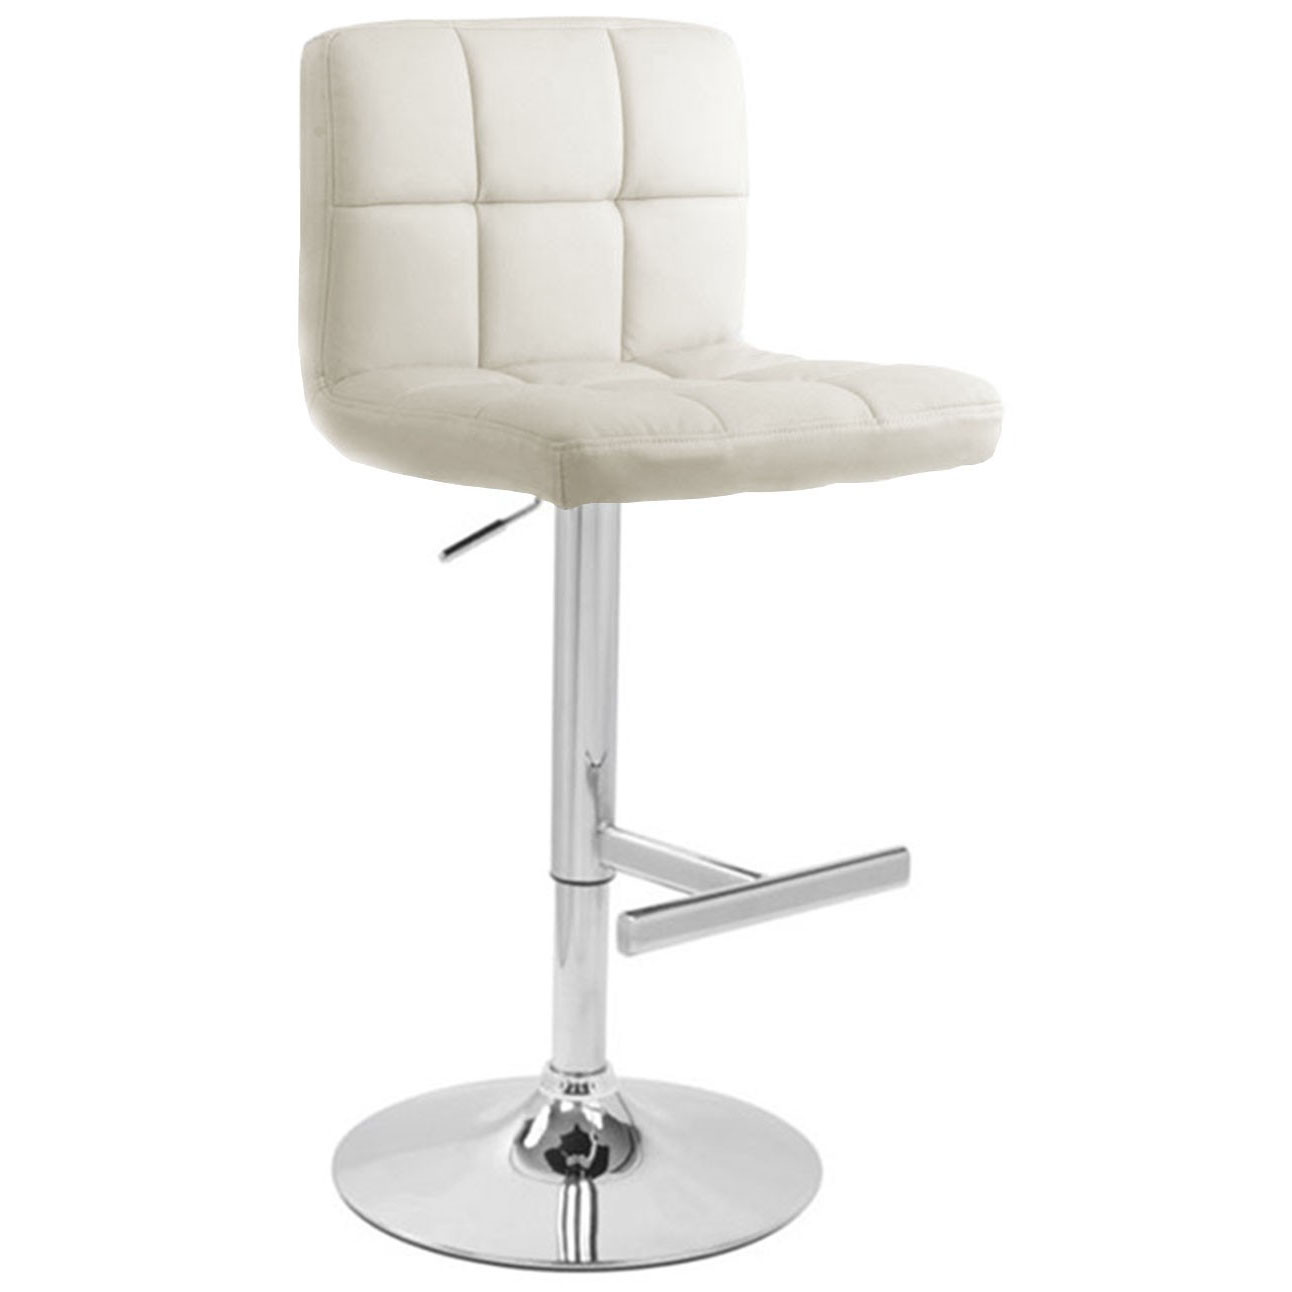 Allegro Bar Stool - White